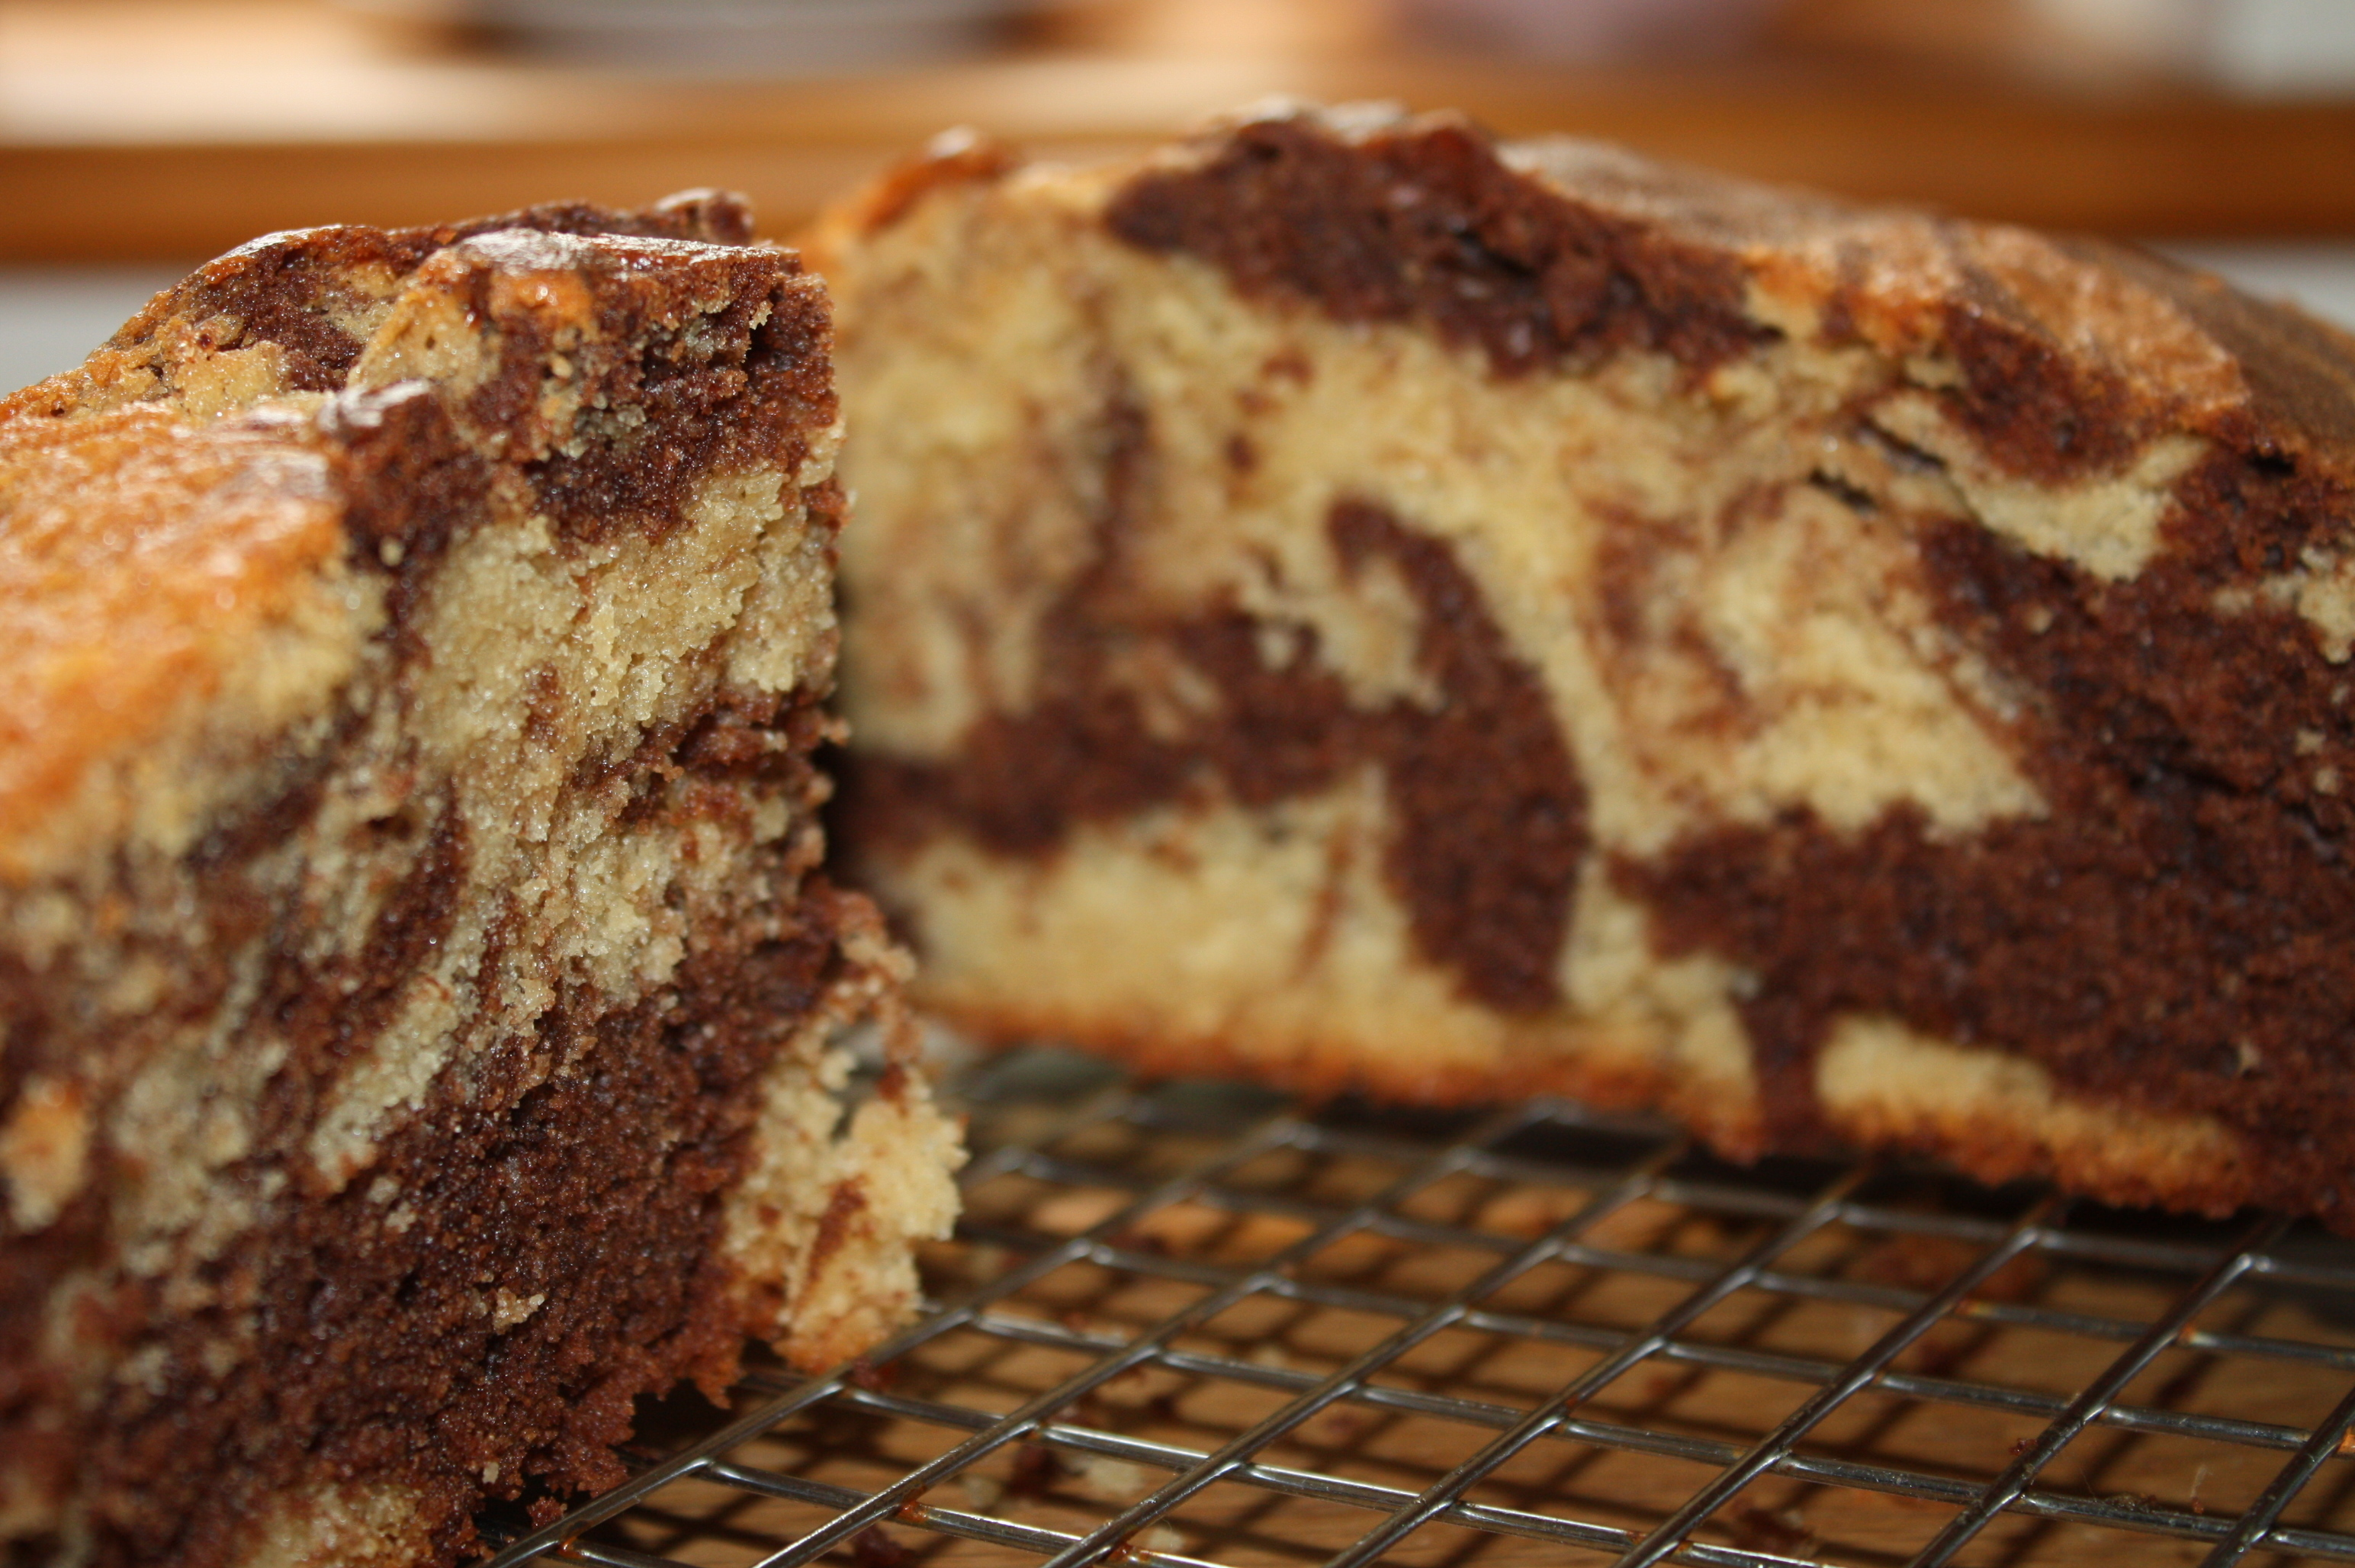 Recipe: Chocolate Marble Cake